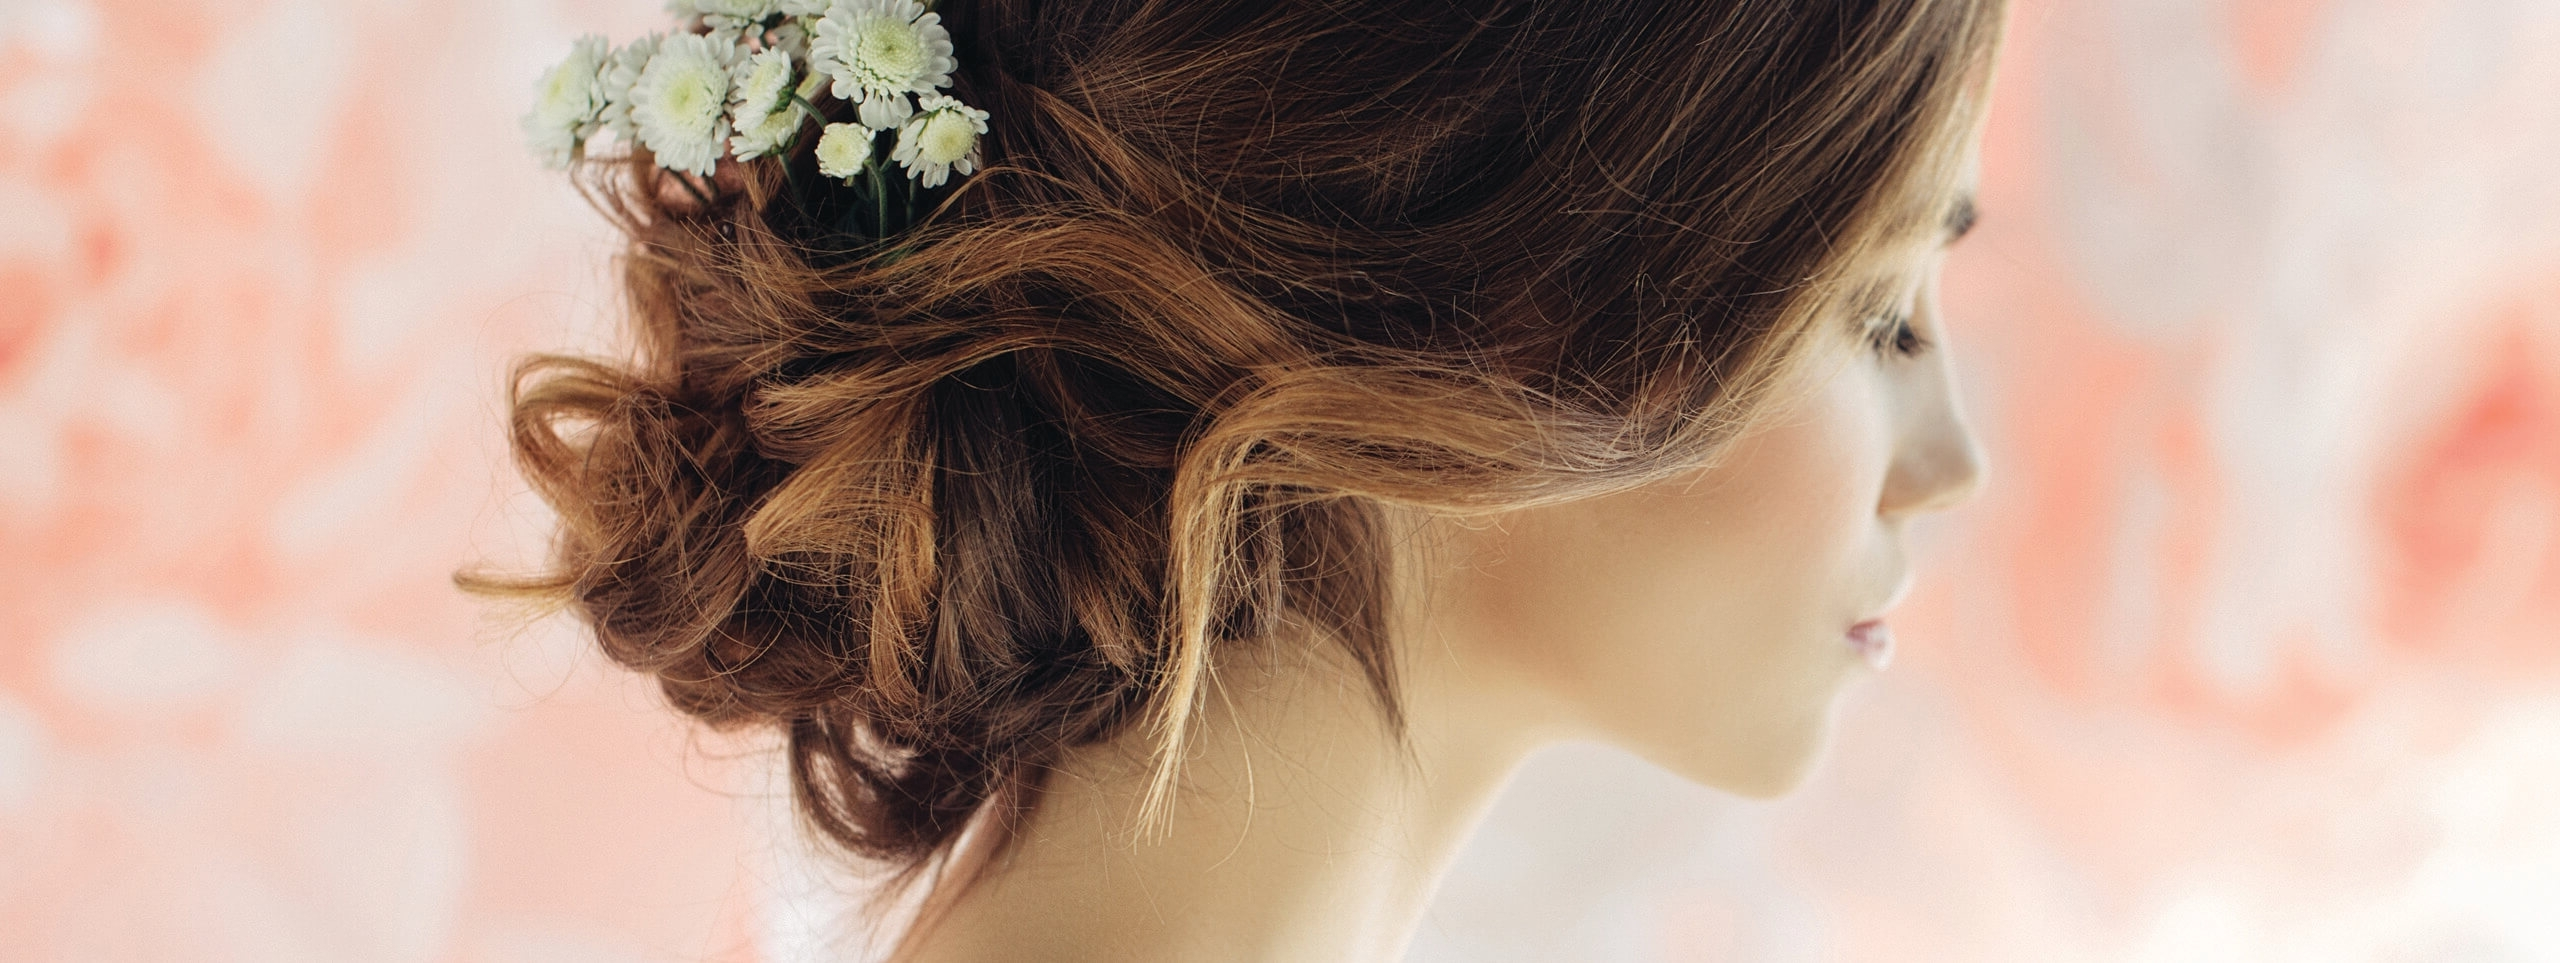 Wedding Hairstyles For Medium Hair For Most Recent Classy Flower Studded Pony Hairstyles (View 20 of 20)